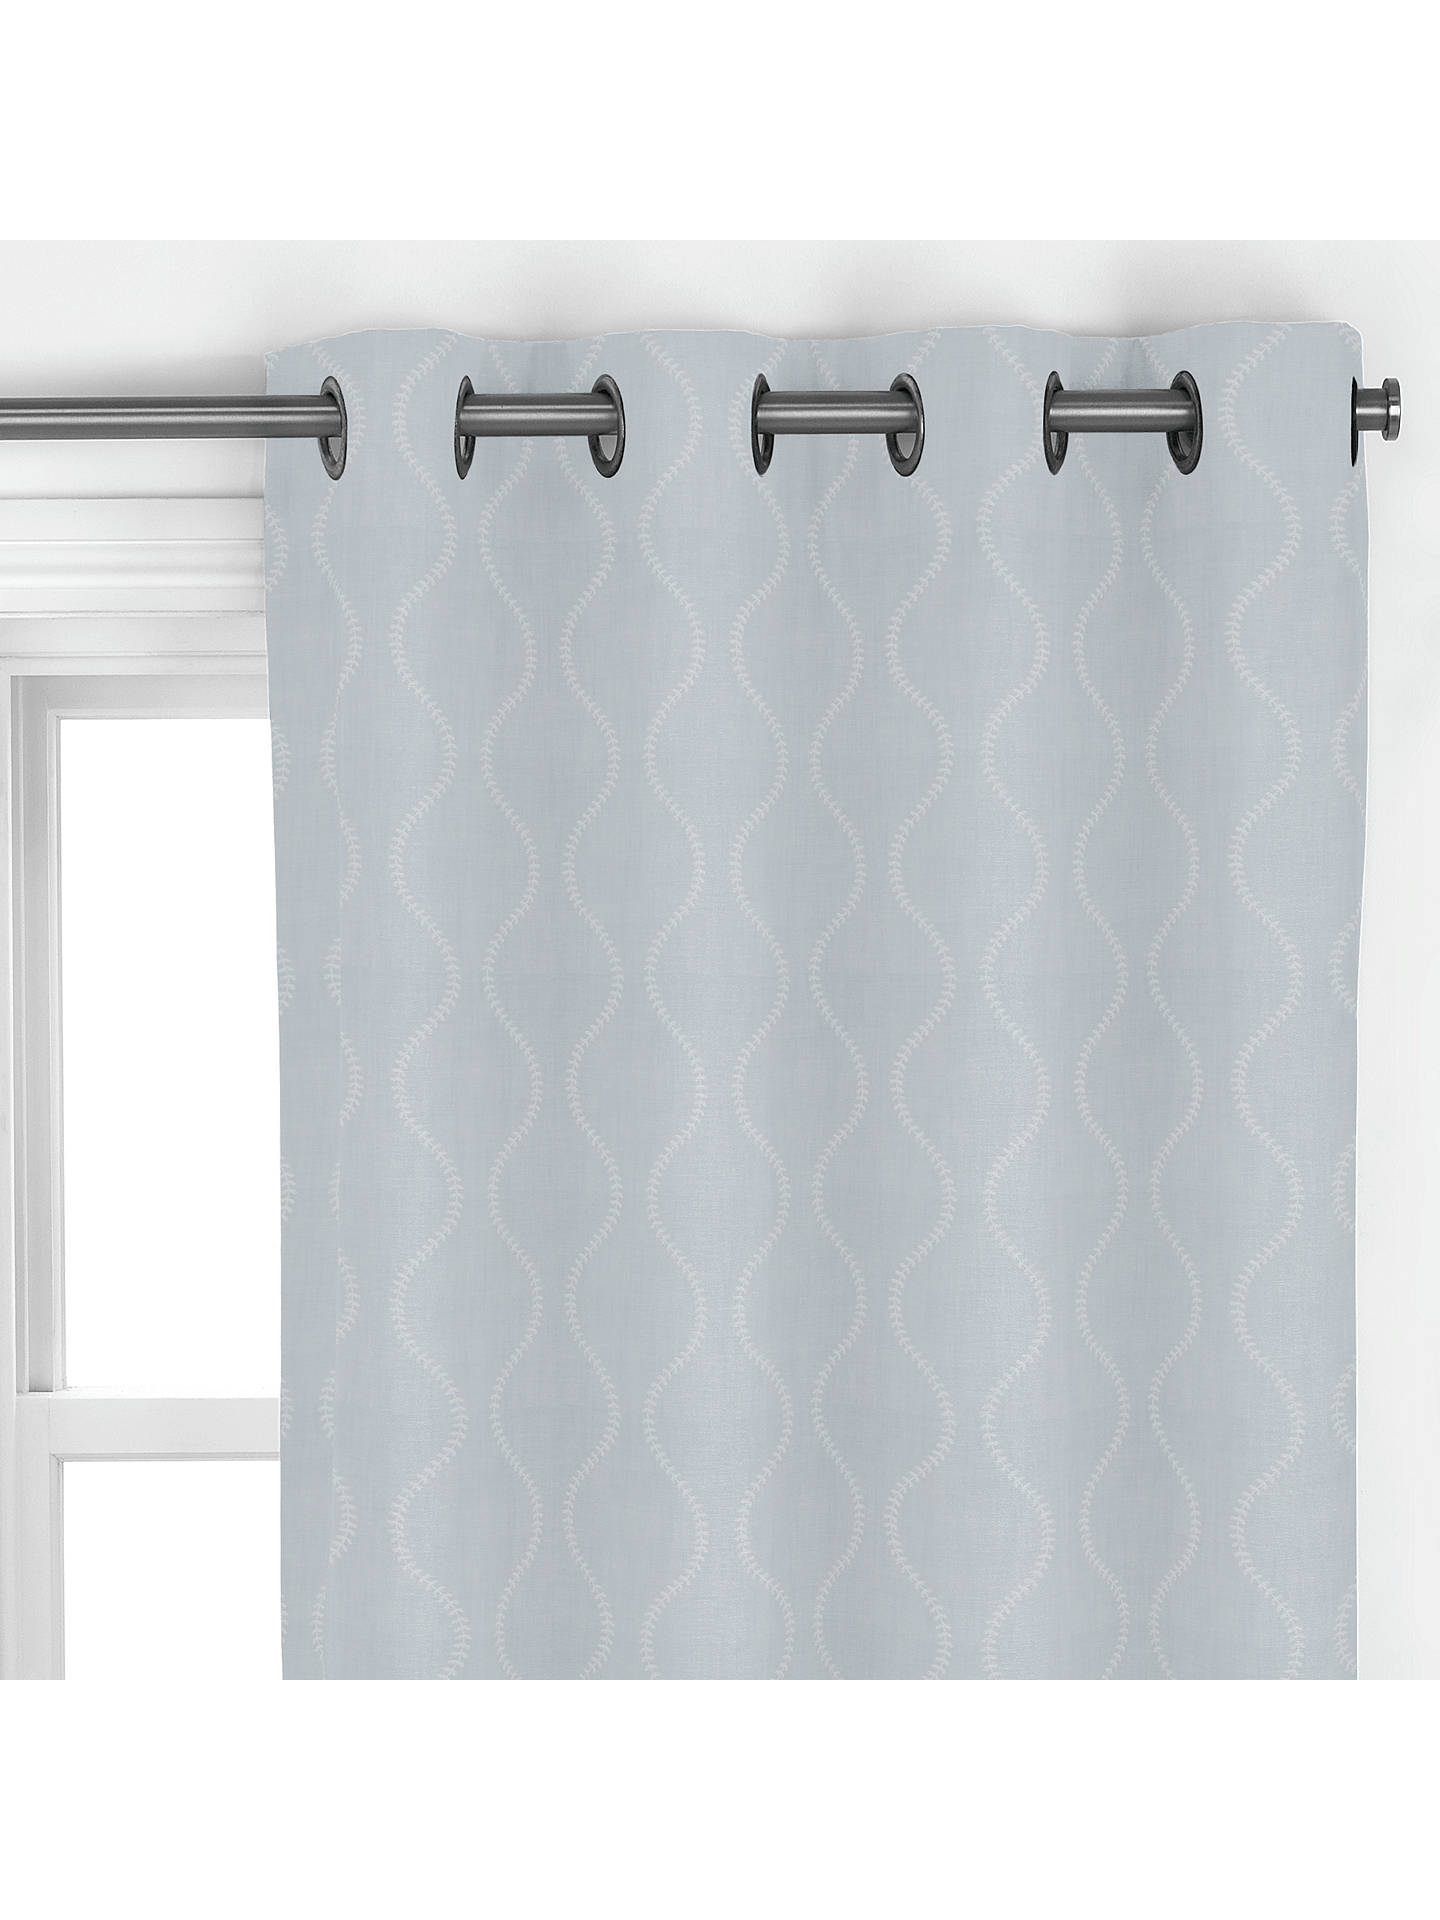 Buy John Lewis & Partners Chattis Embroidery Made to Measure Curtains, Grey Online at johnlewis.com